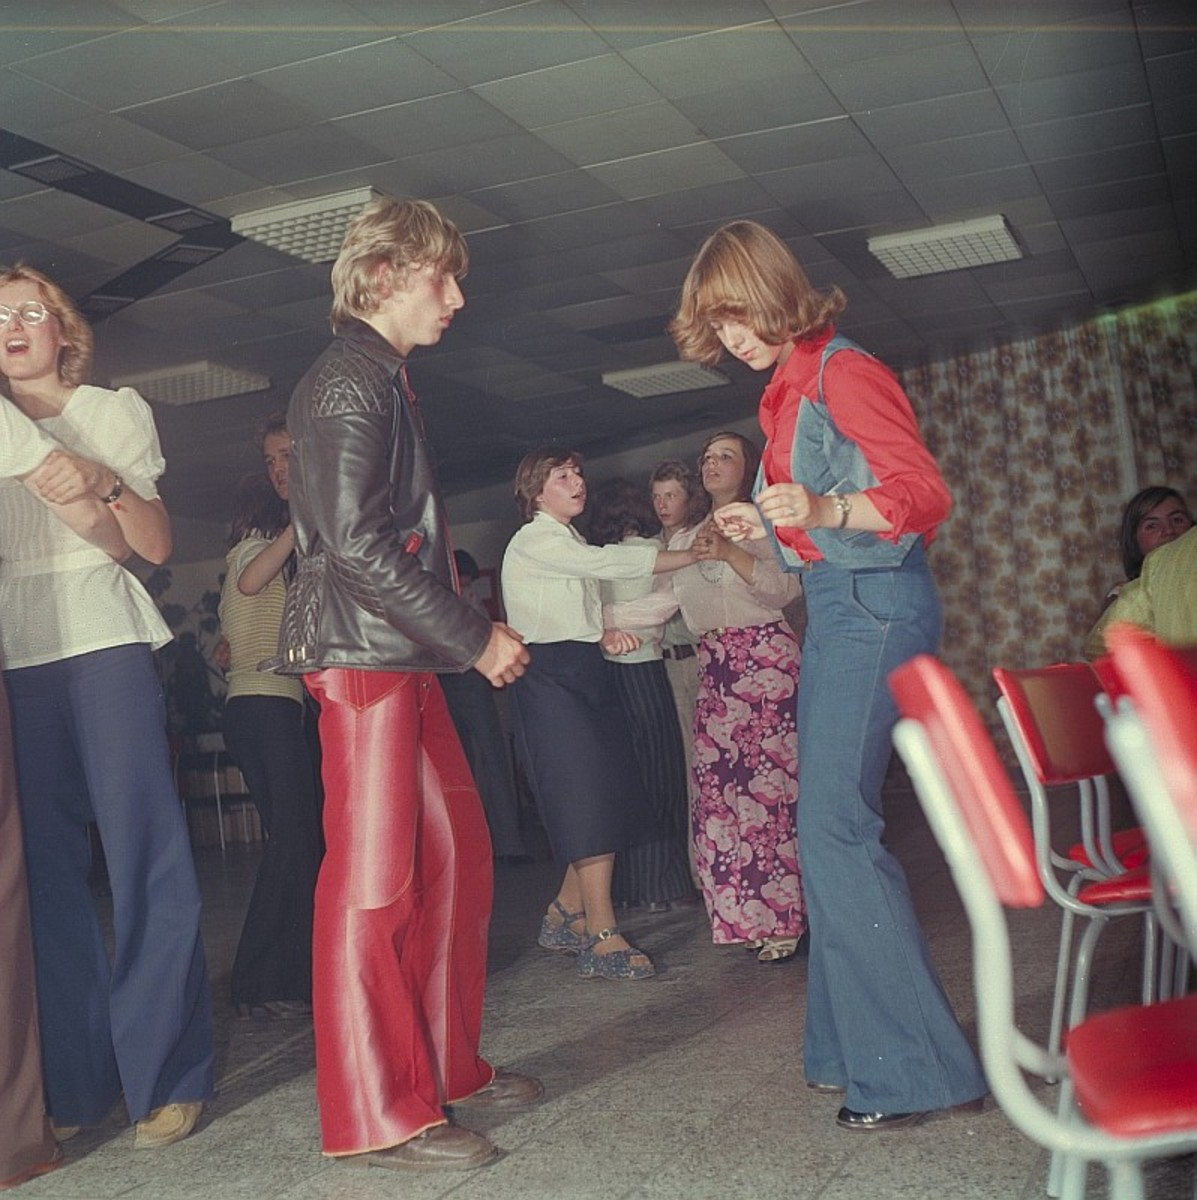 Flared jeans and trousers were popular with both sexes as can be seen at this German disco in 1977